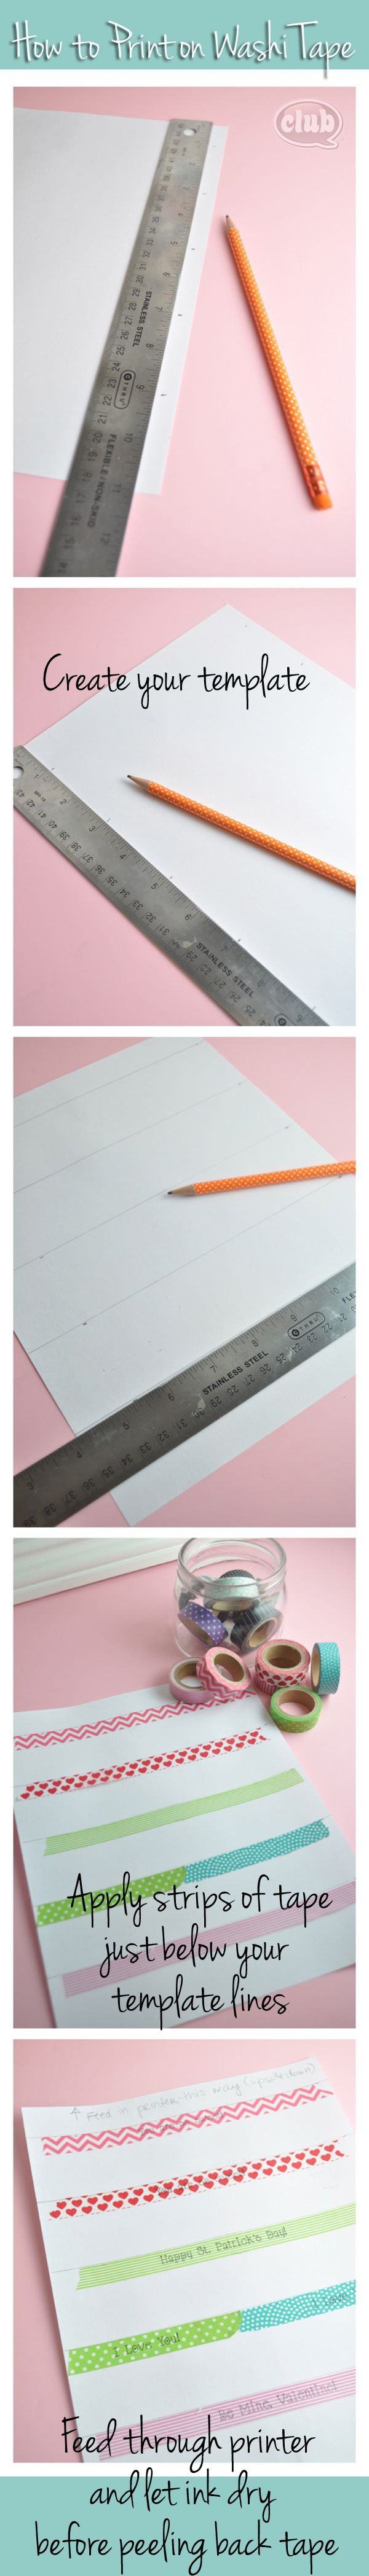 It's easier than you think to print on Japanese Washi Tape. Great DIY & craft ideas @clubchicacircle